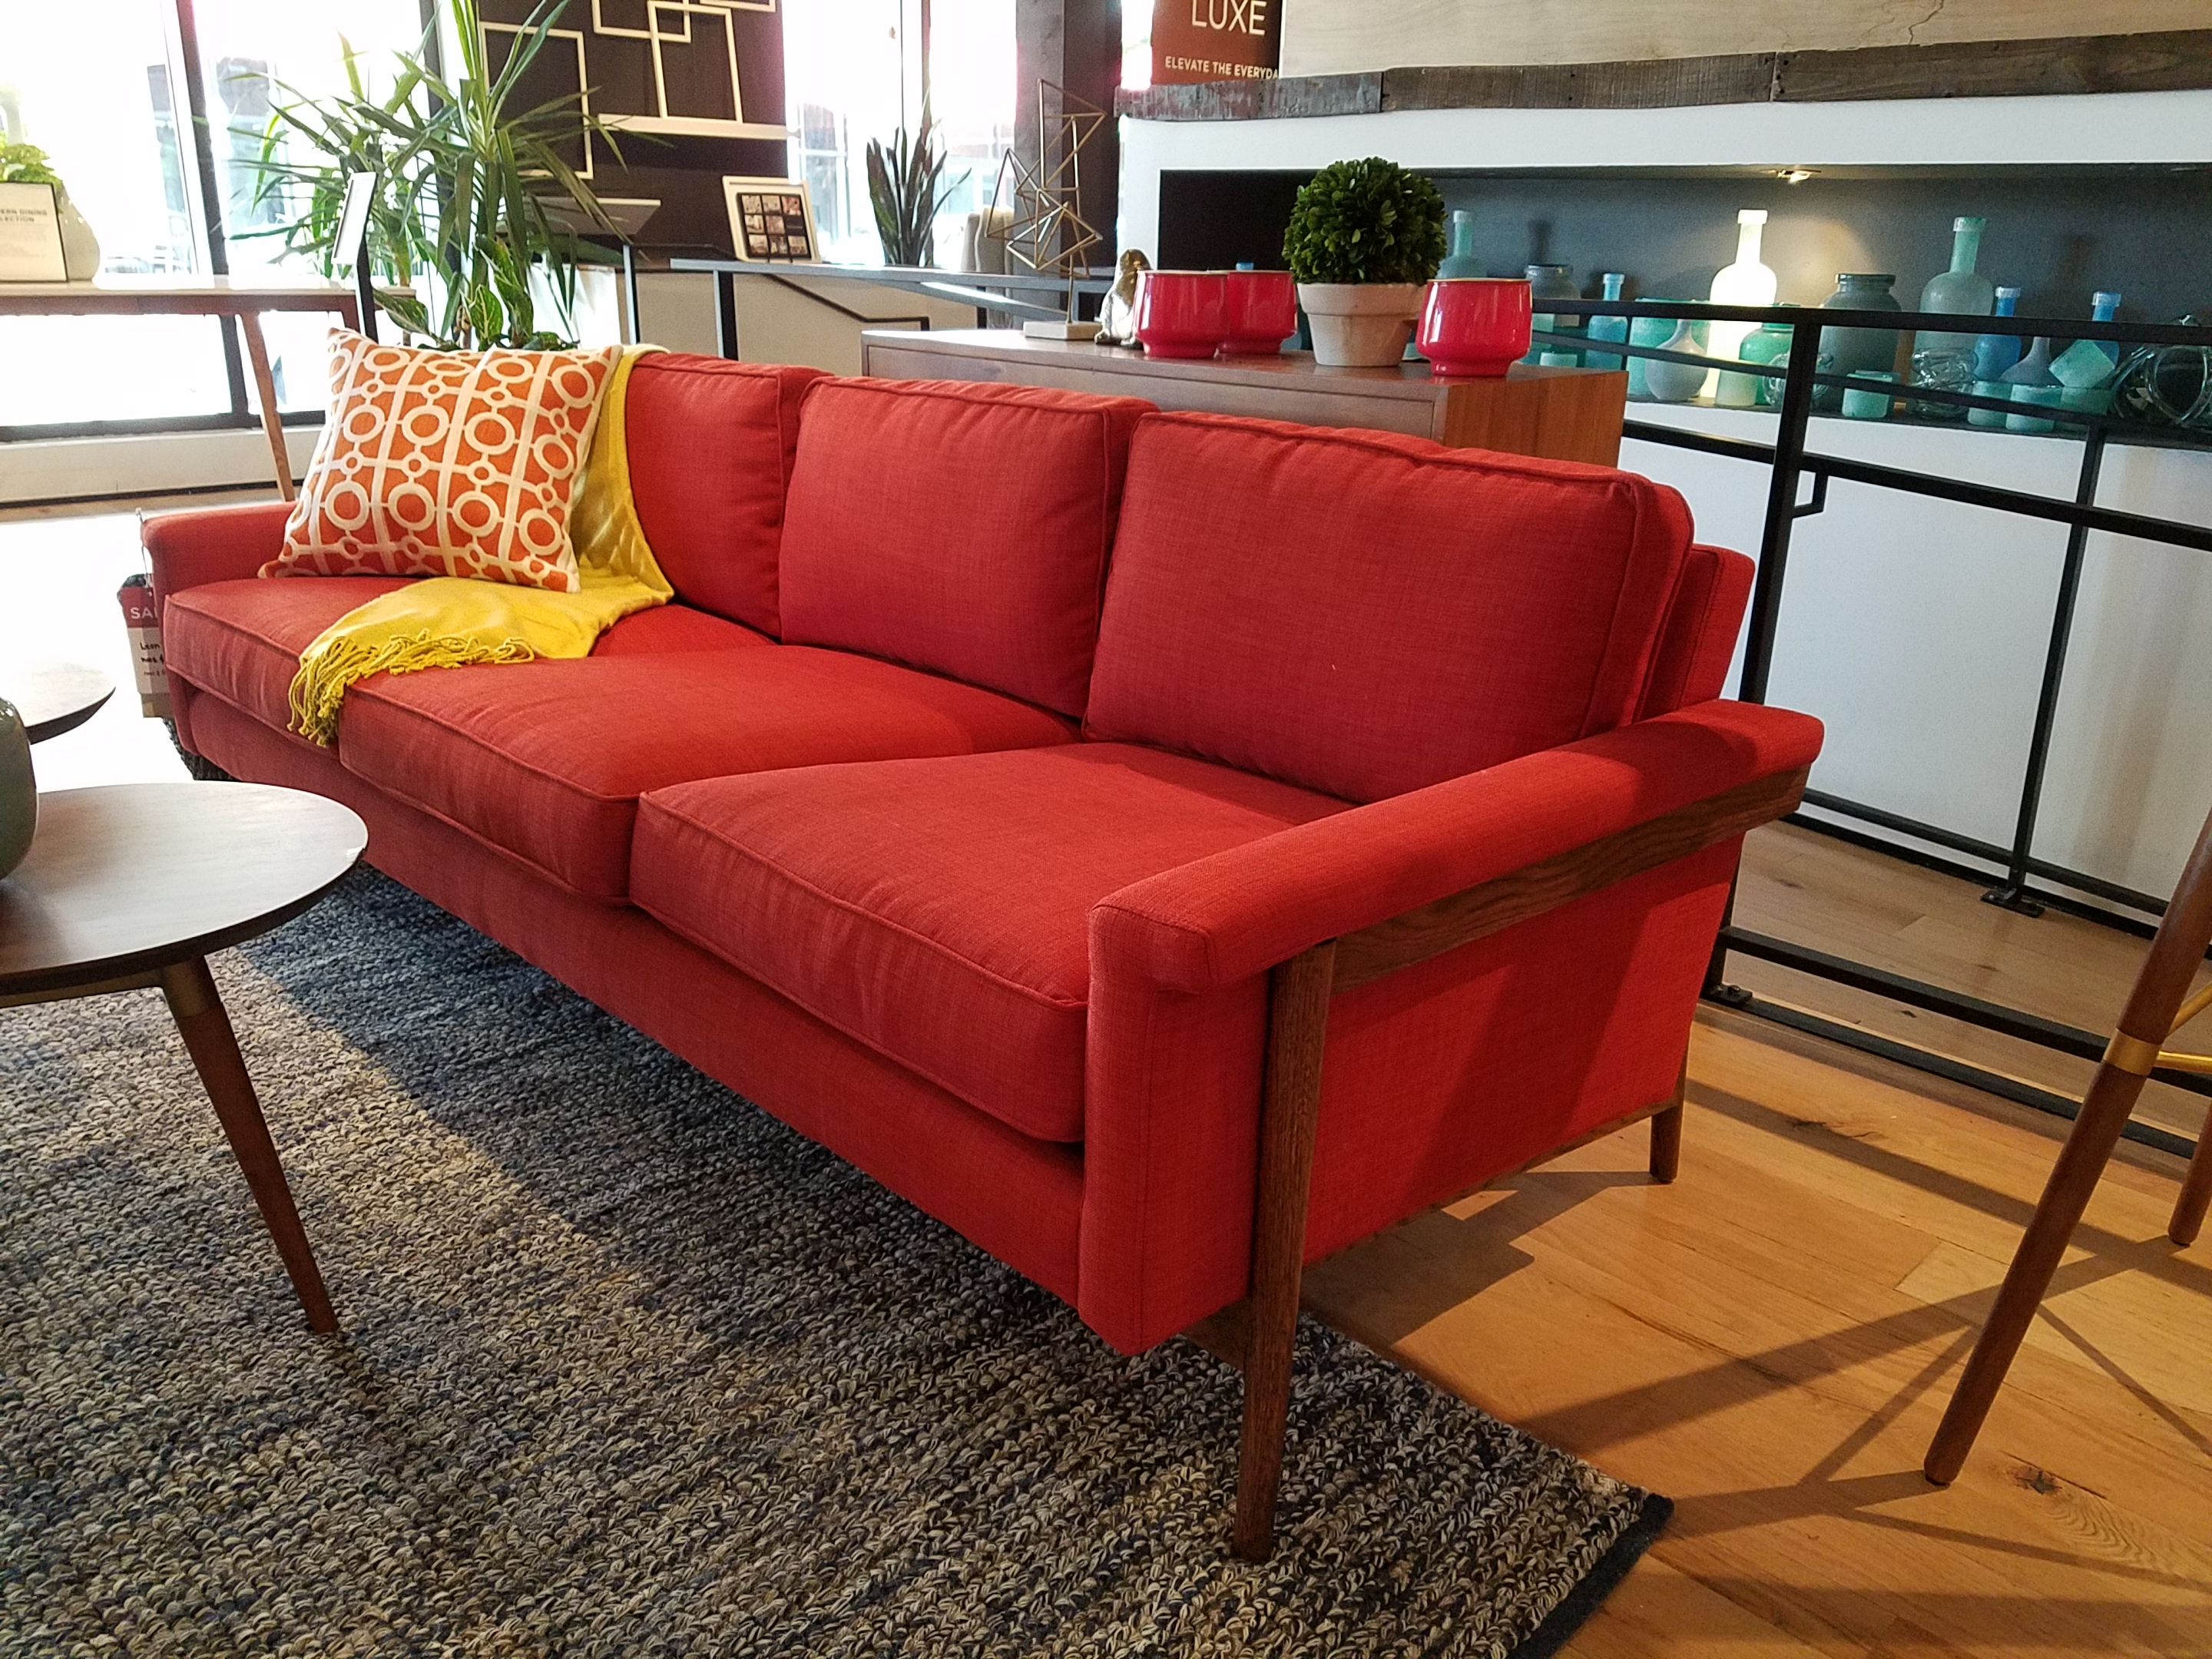 Mid century modern couch best affordable sofa modern for Cheap modern furniture in miami